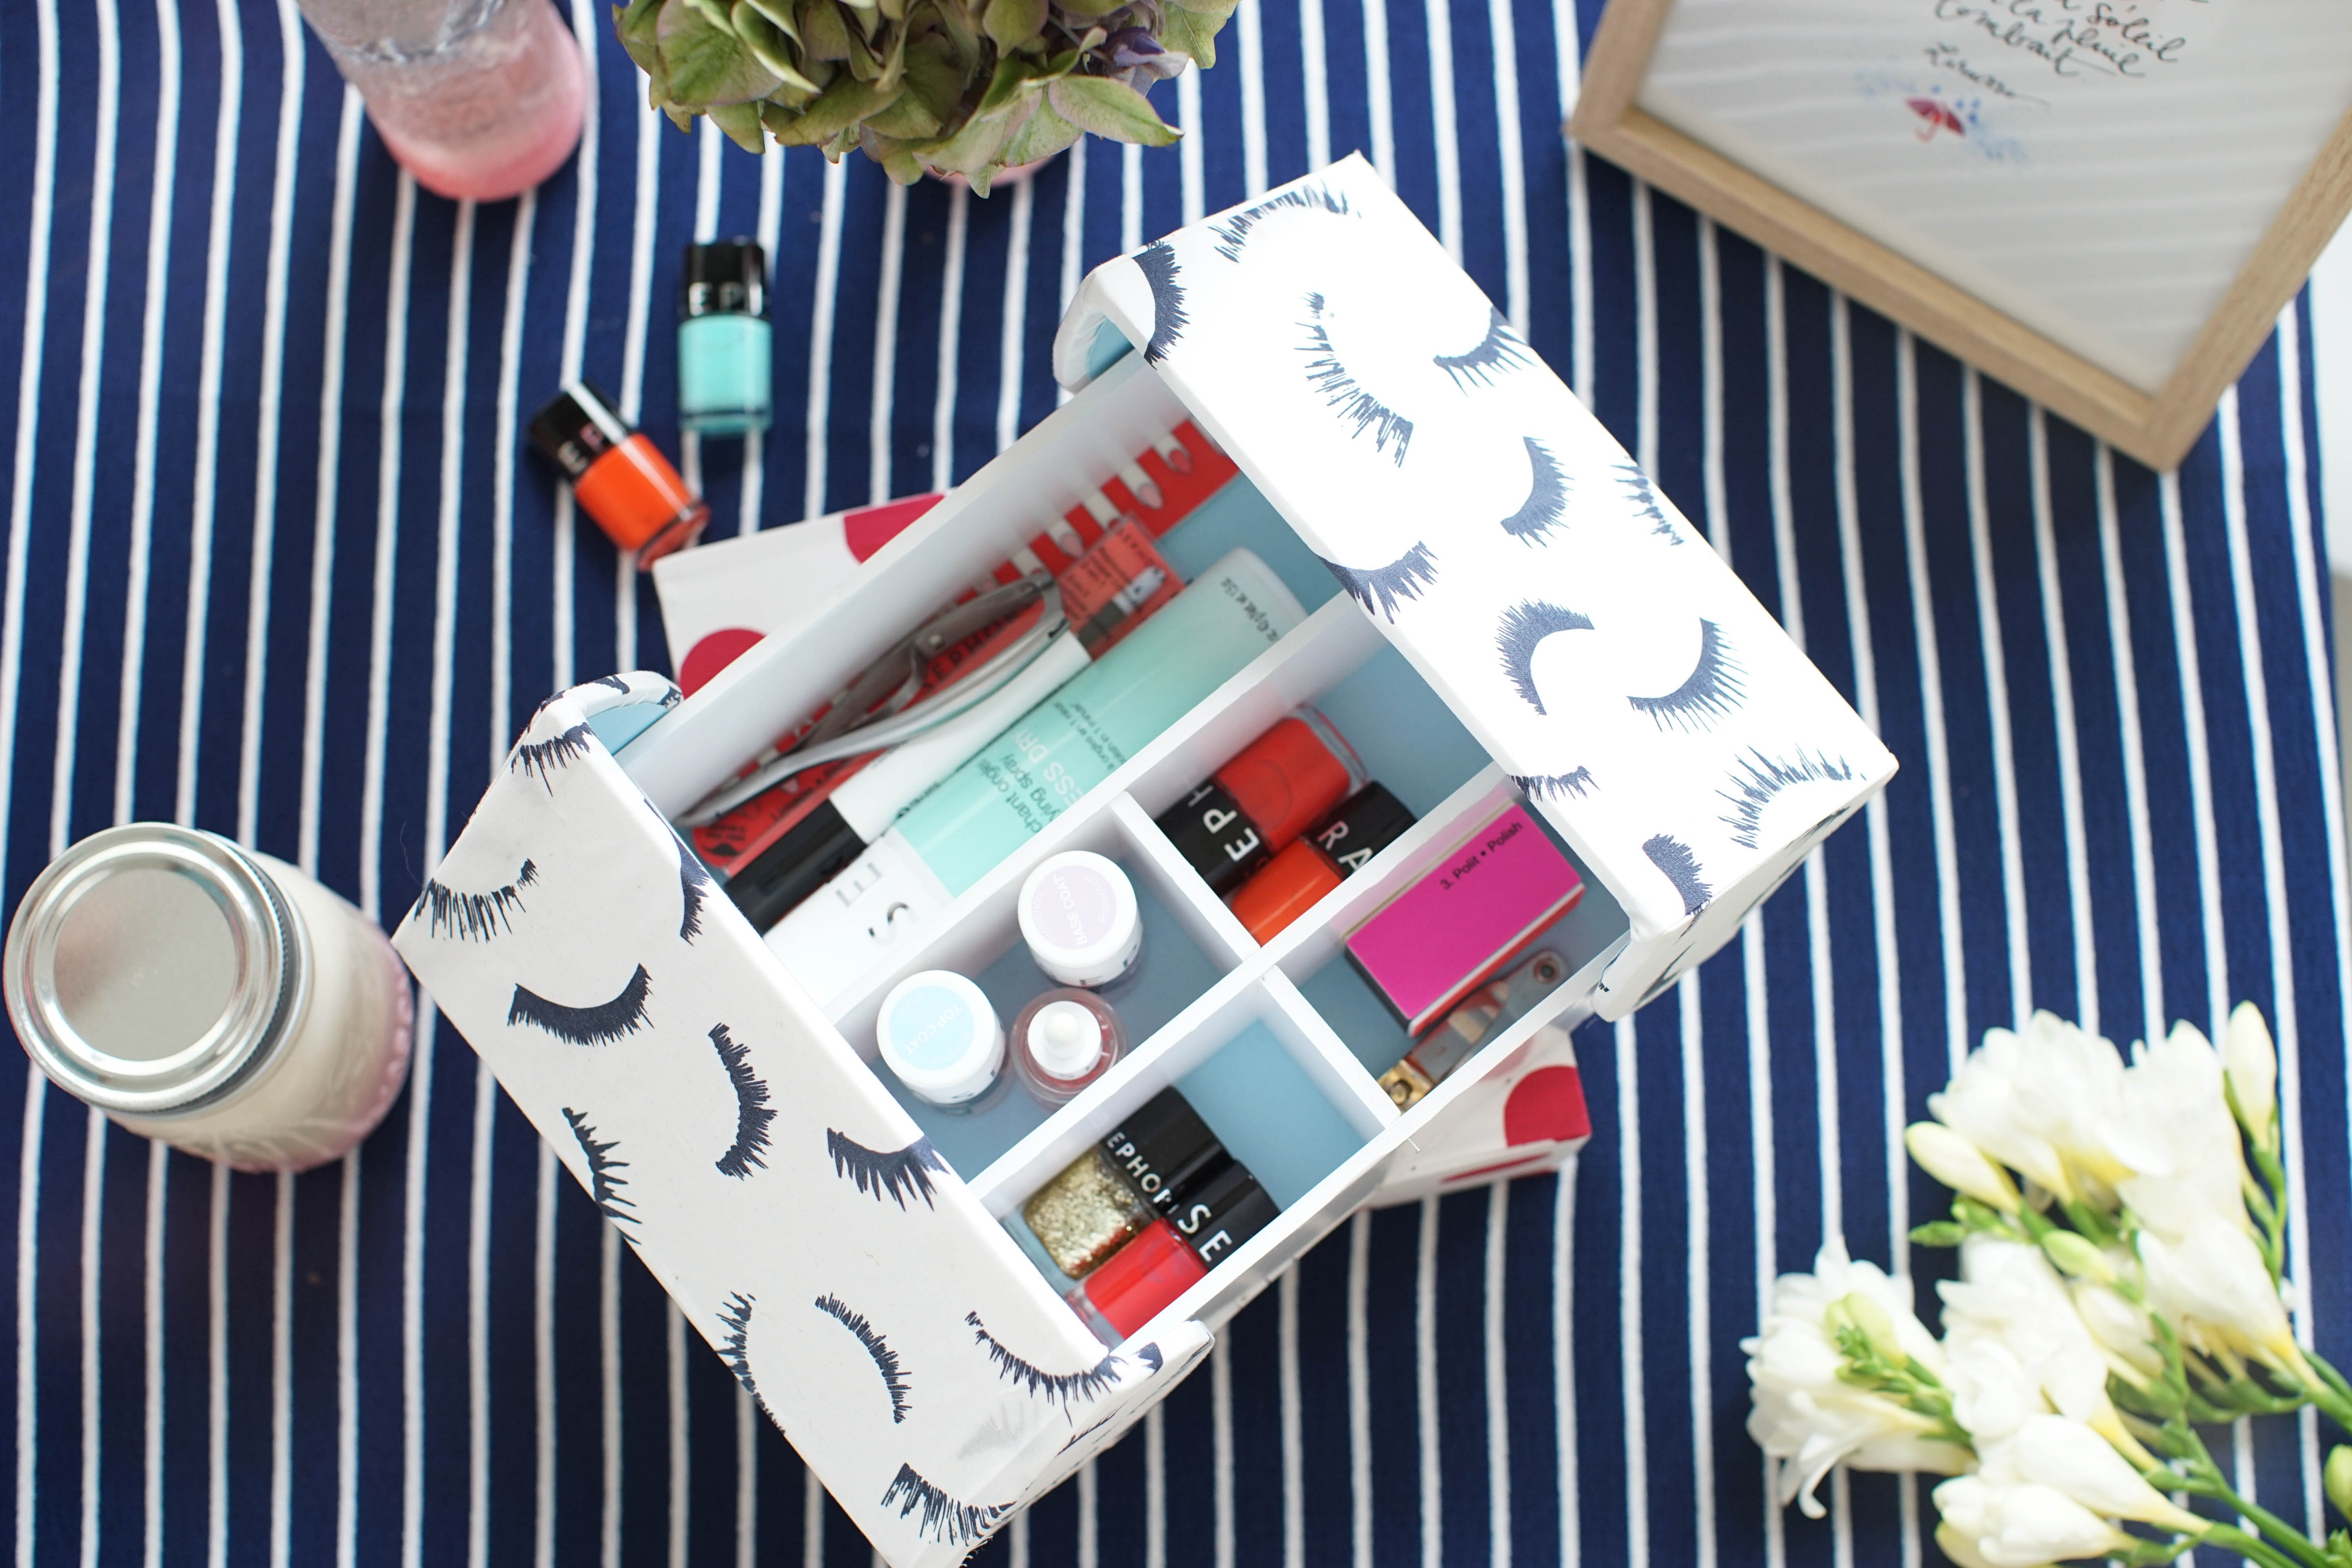 make-my-lemonade-do-it-yourself-boite-maquillage-1